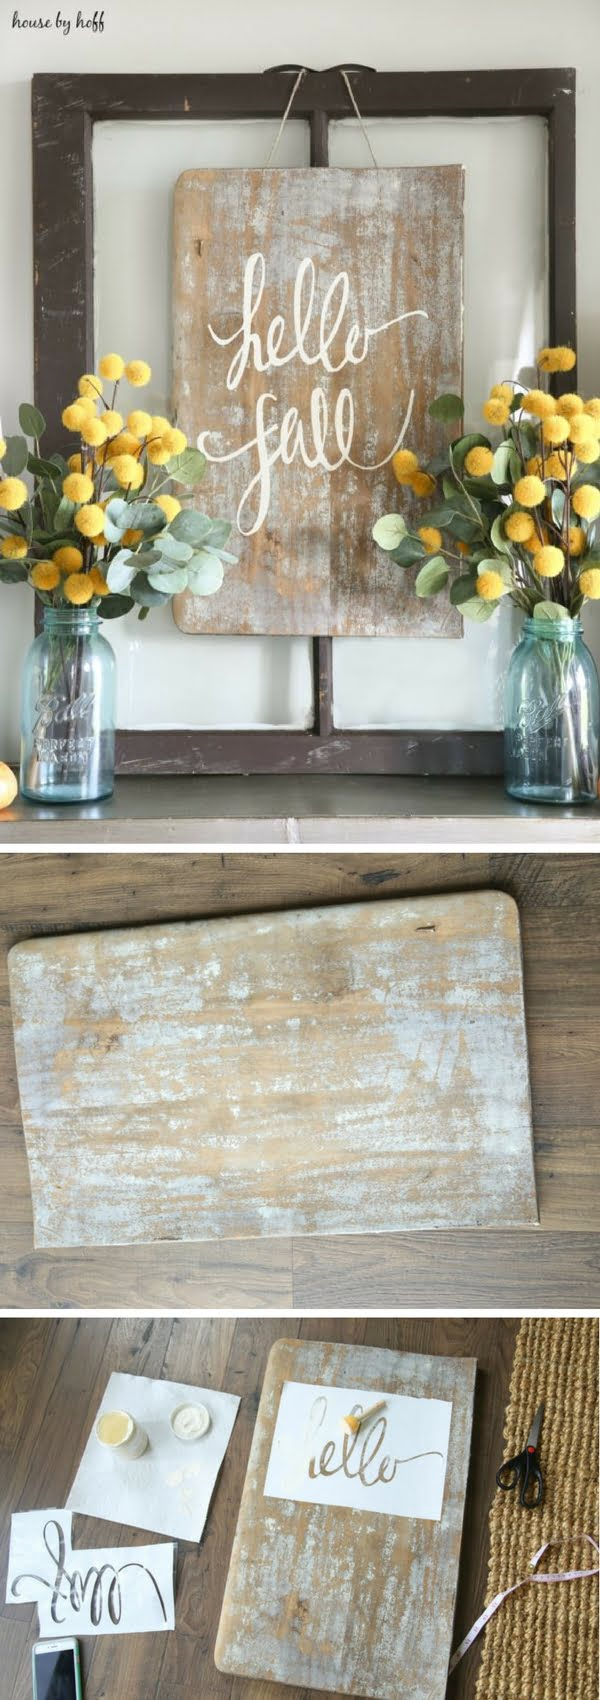 Check out how to make an easy DIY Fall Sign for farmhouse style